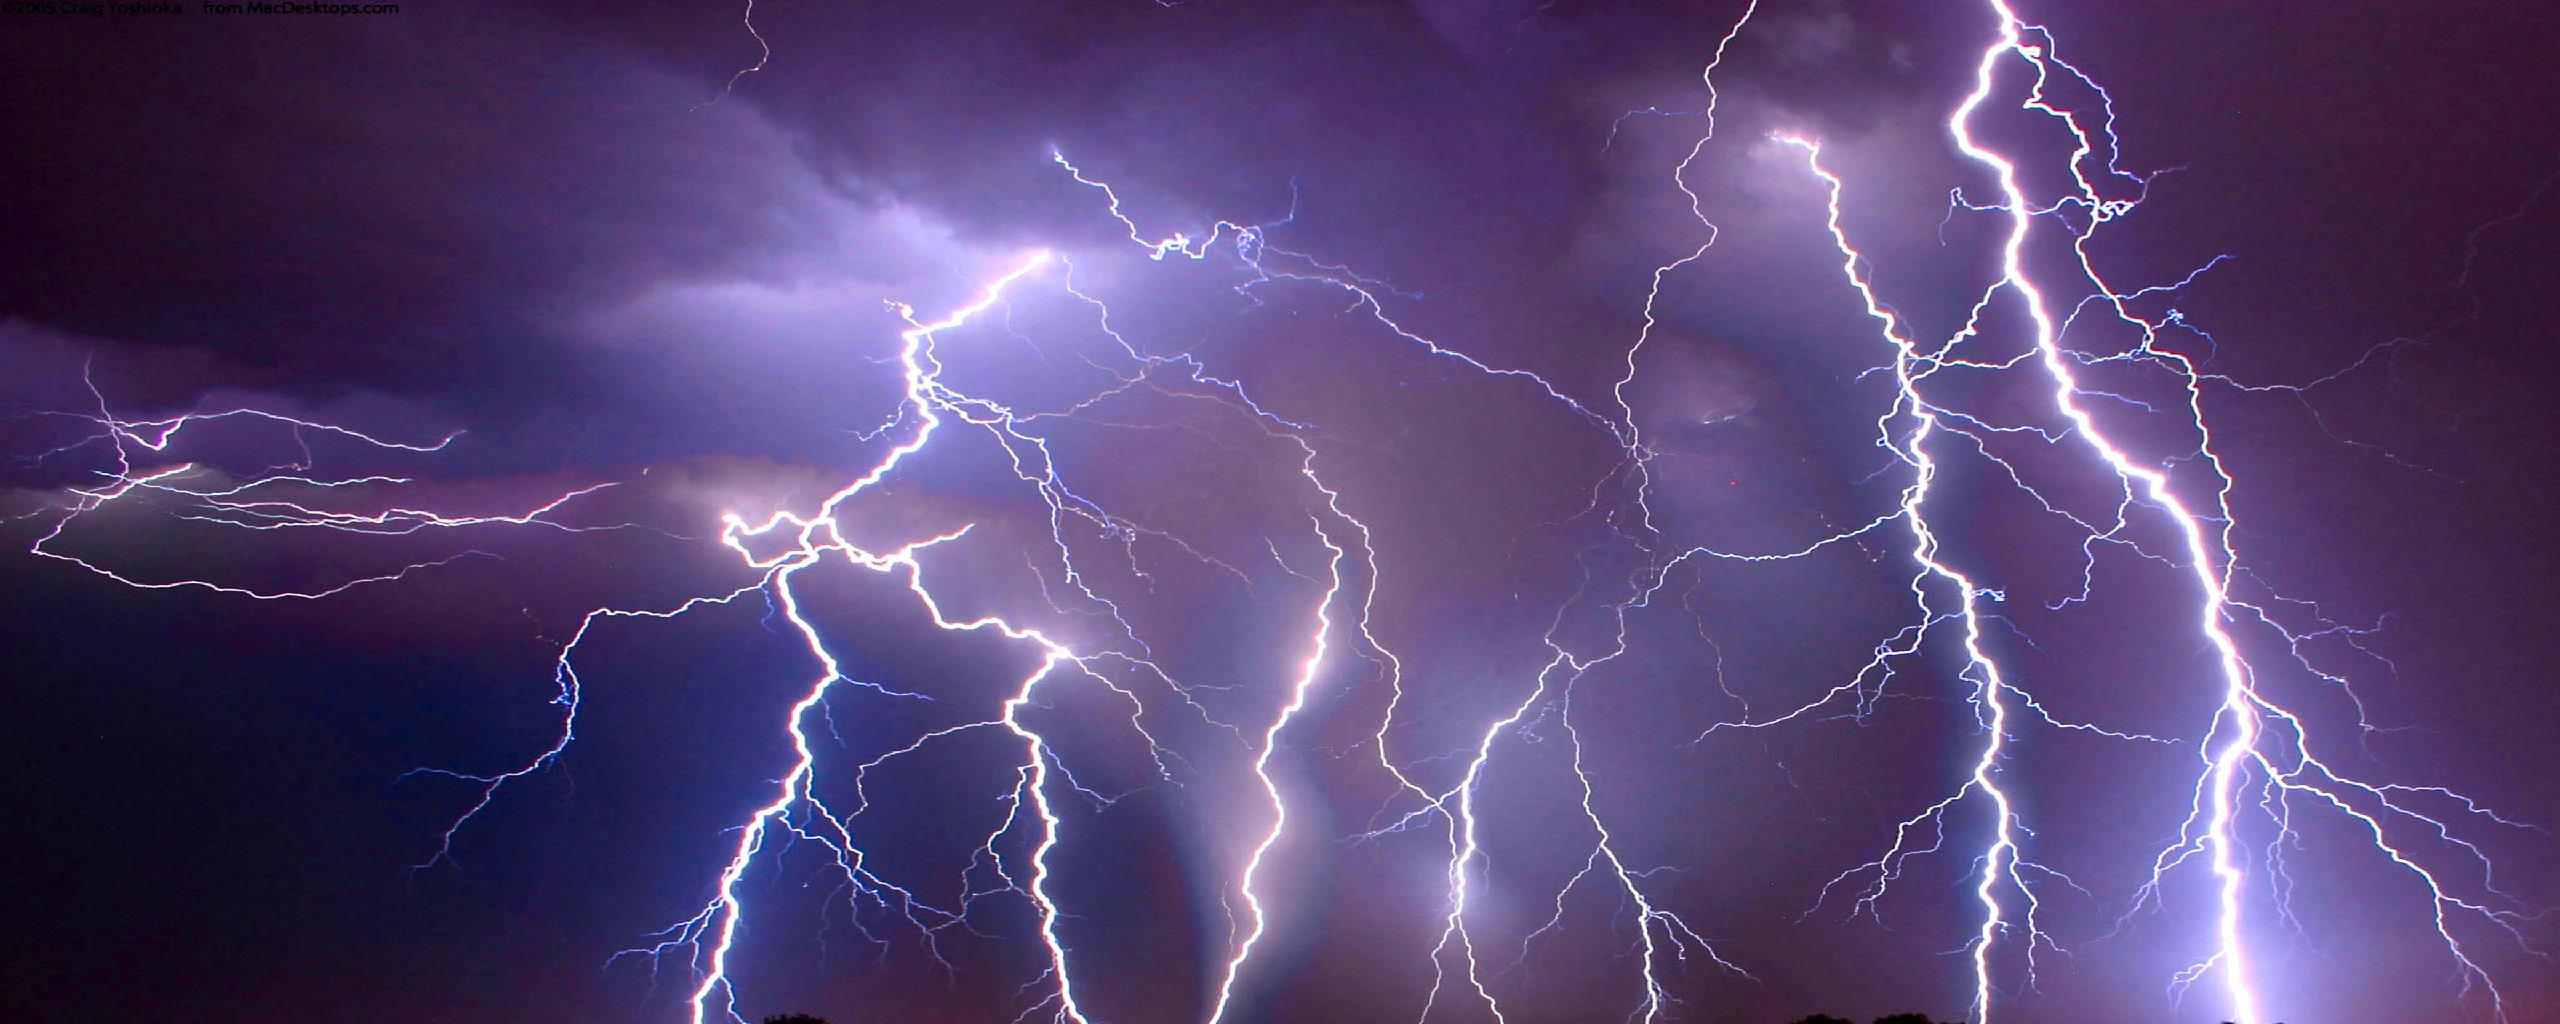 ... Pictures Of Lightning ...